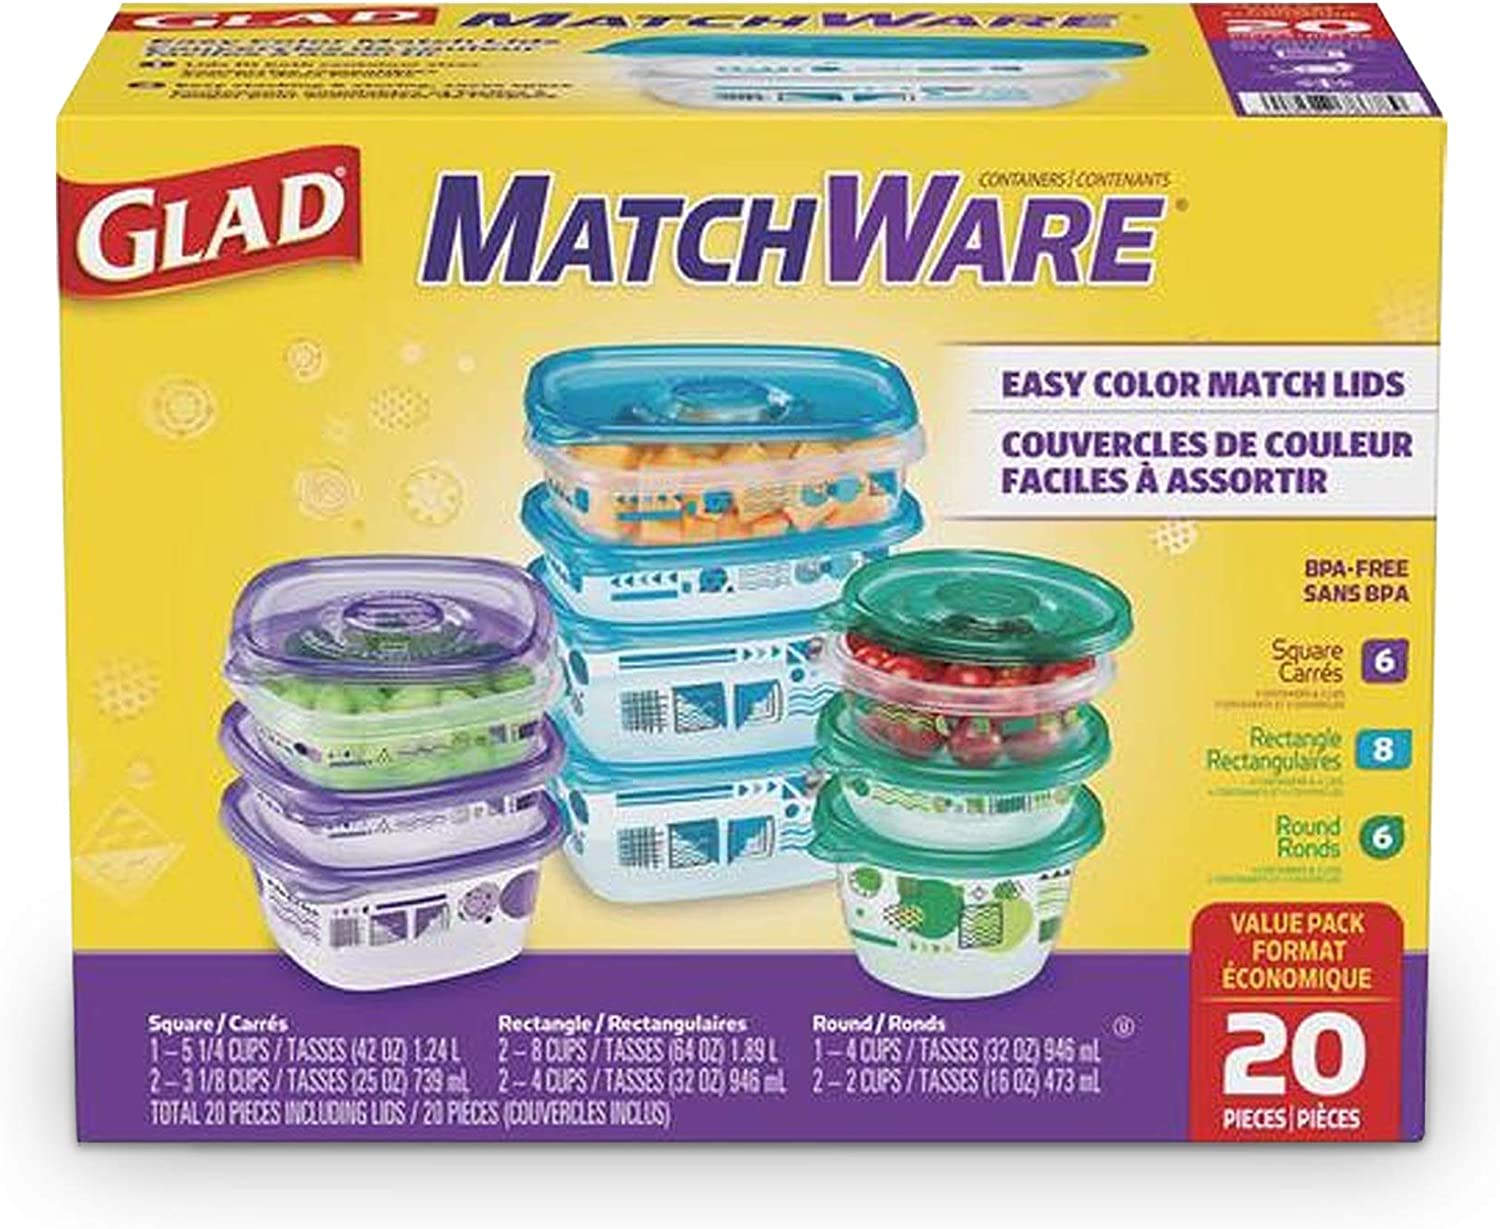 GladWare Matchware Food Storage Containers, Value Pack With Easy Color Match Lids, 20 Count Set